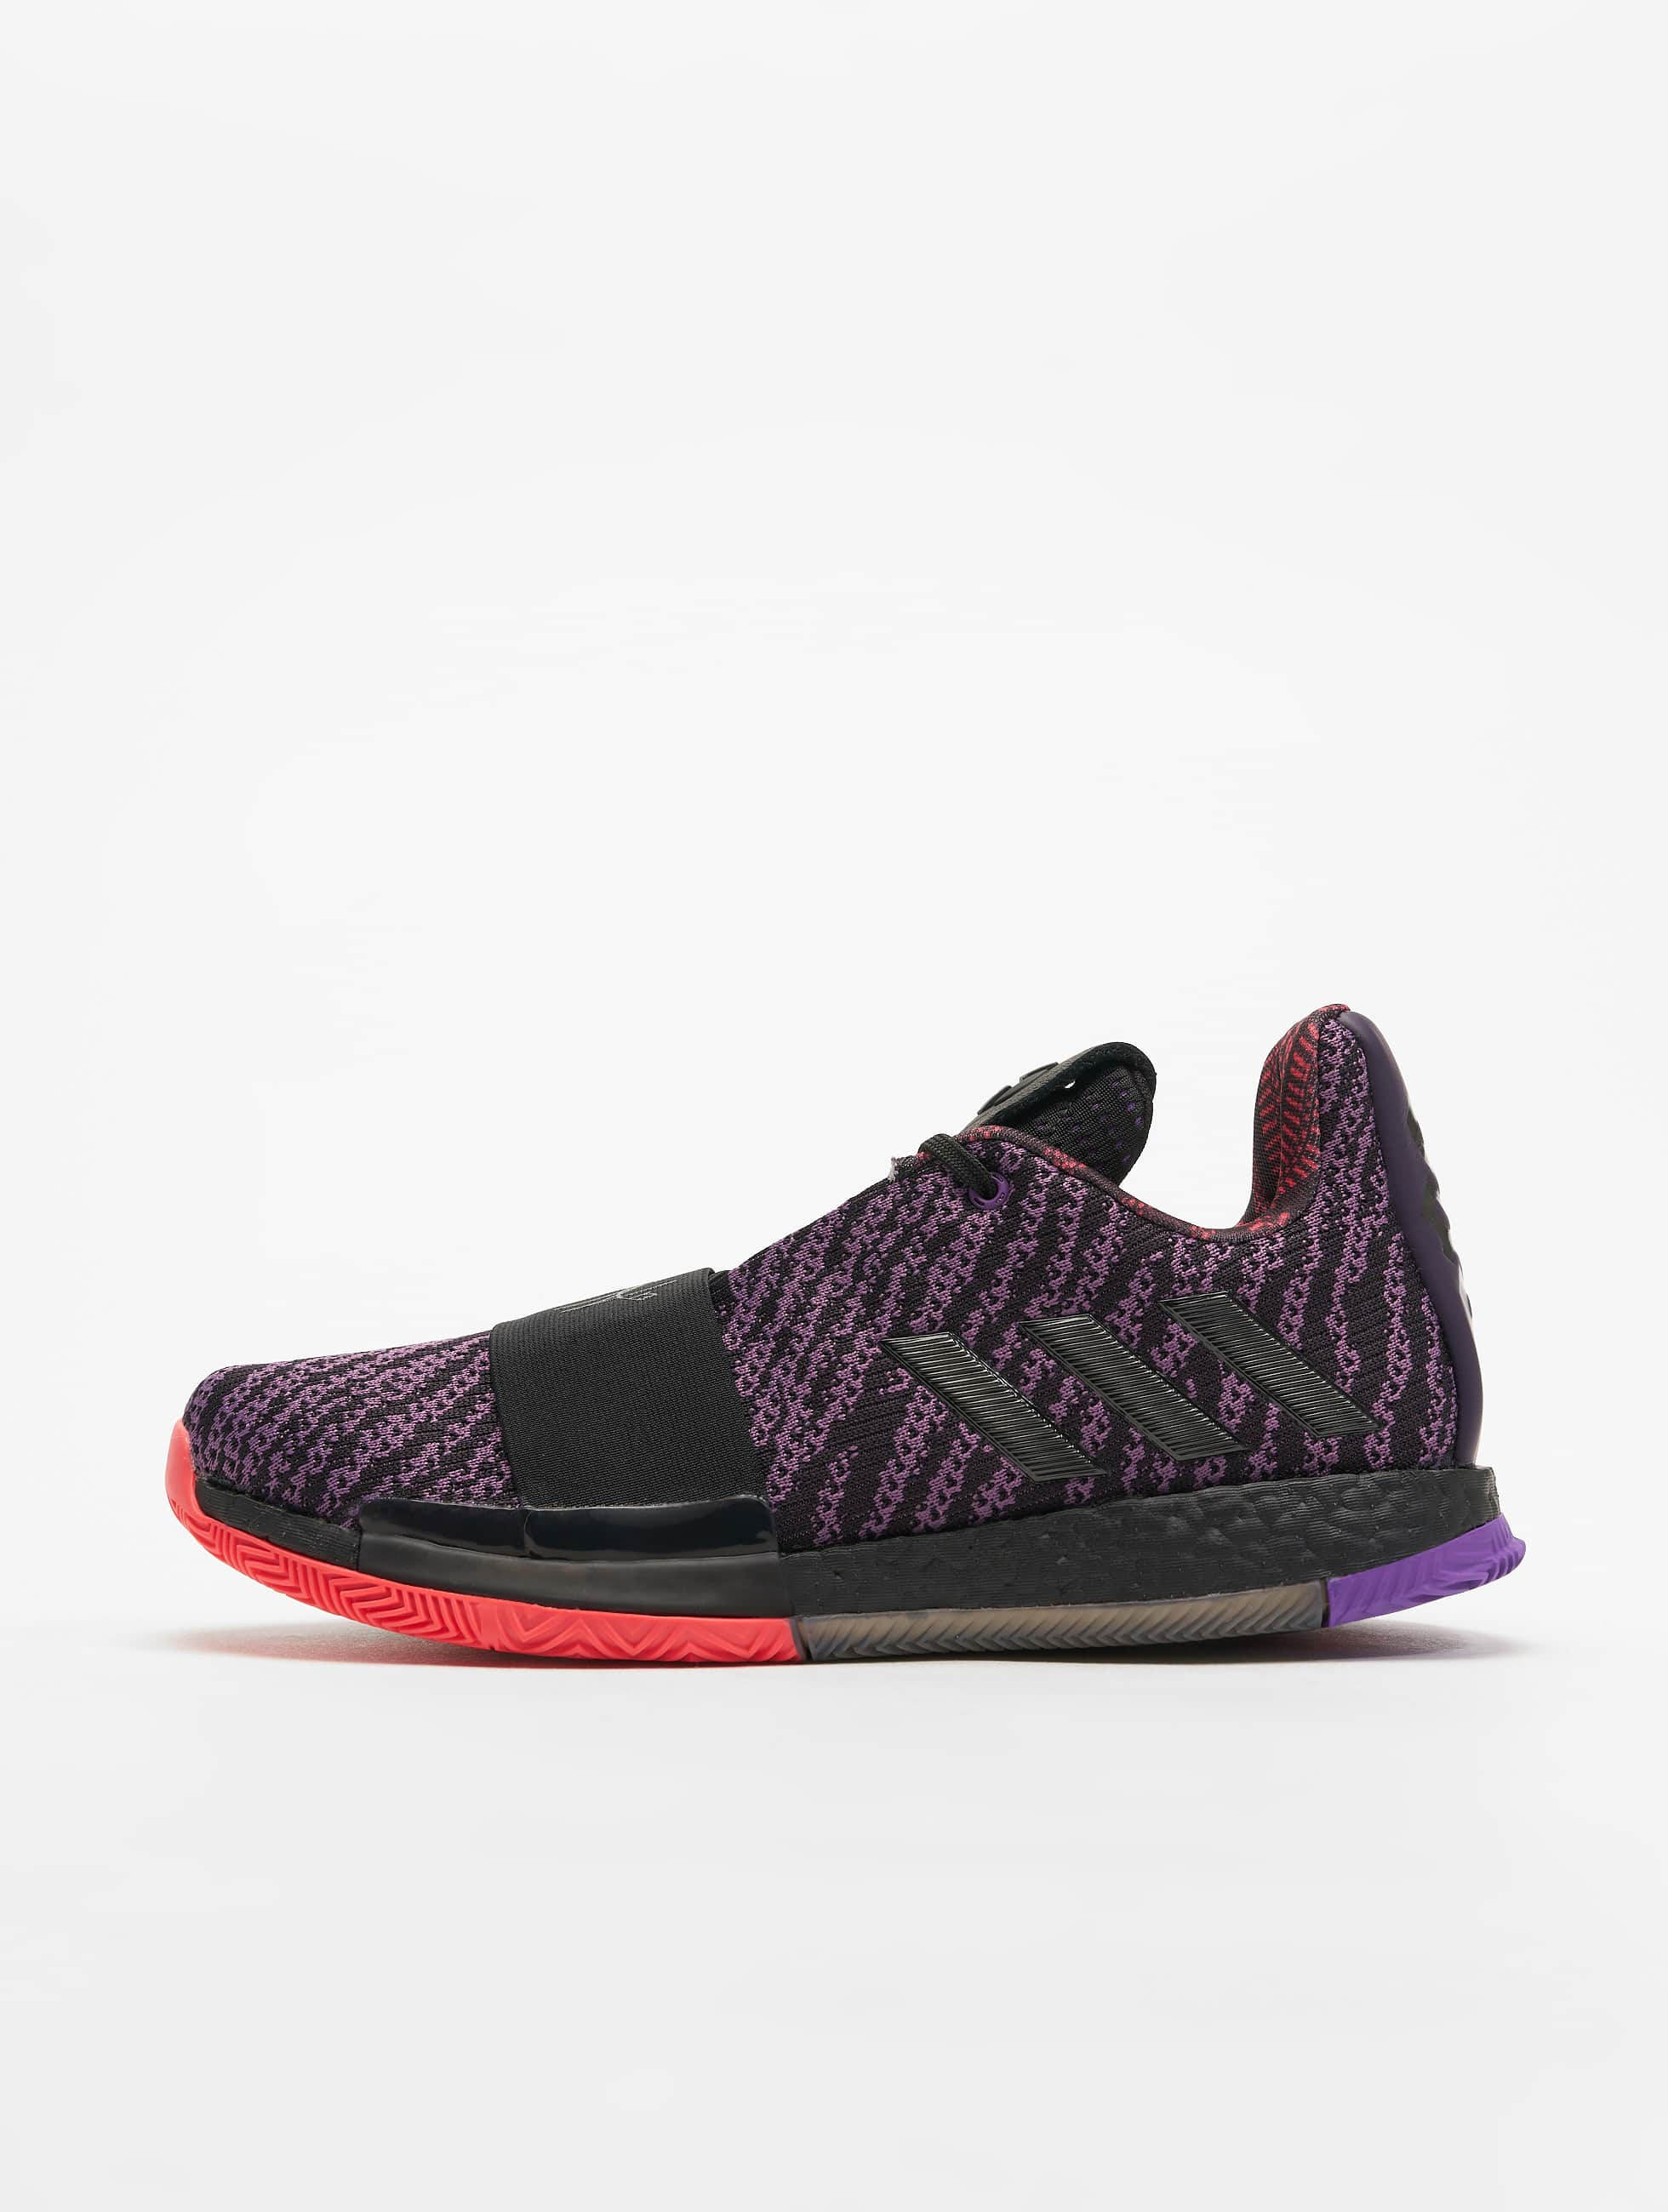 adidas Harden Vol. 3 Basketball Shoes Leg PurpleCore BlackAct Purple